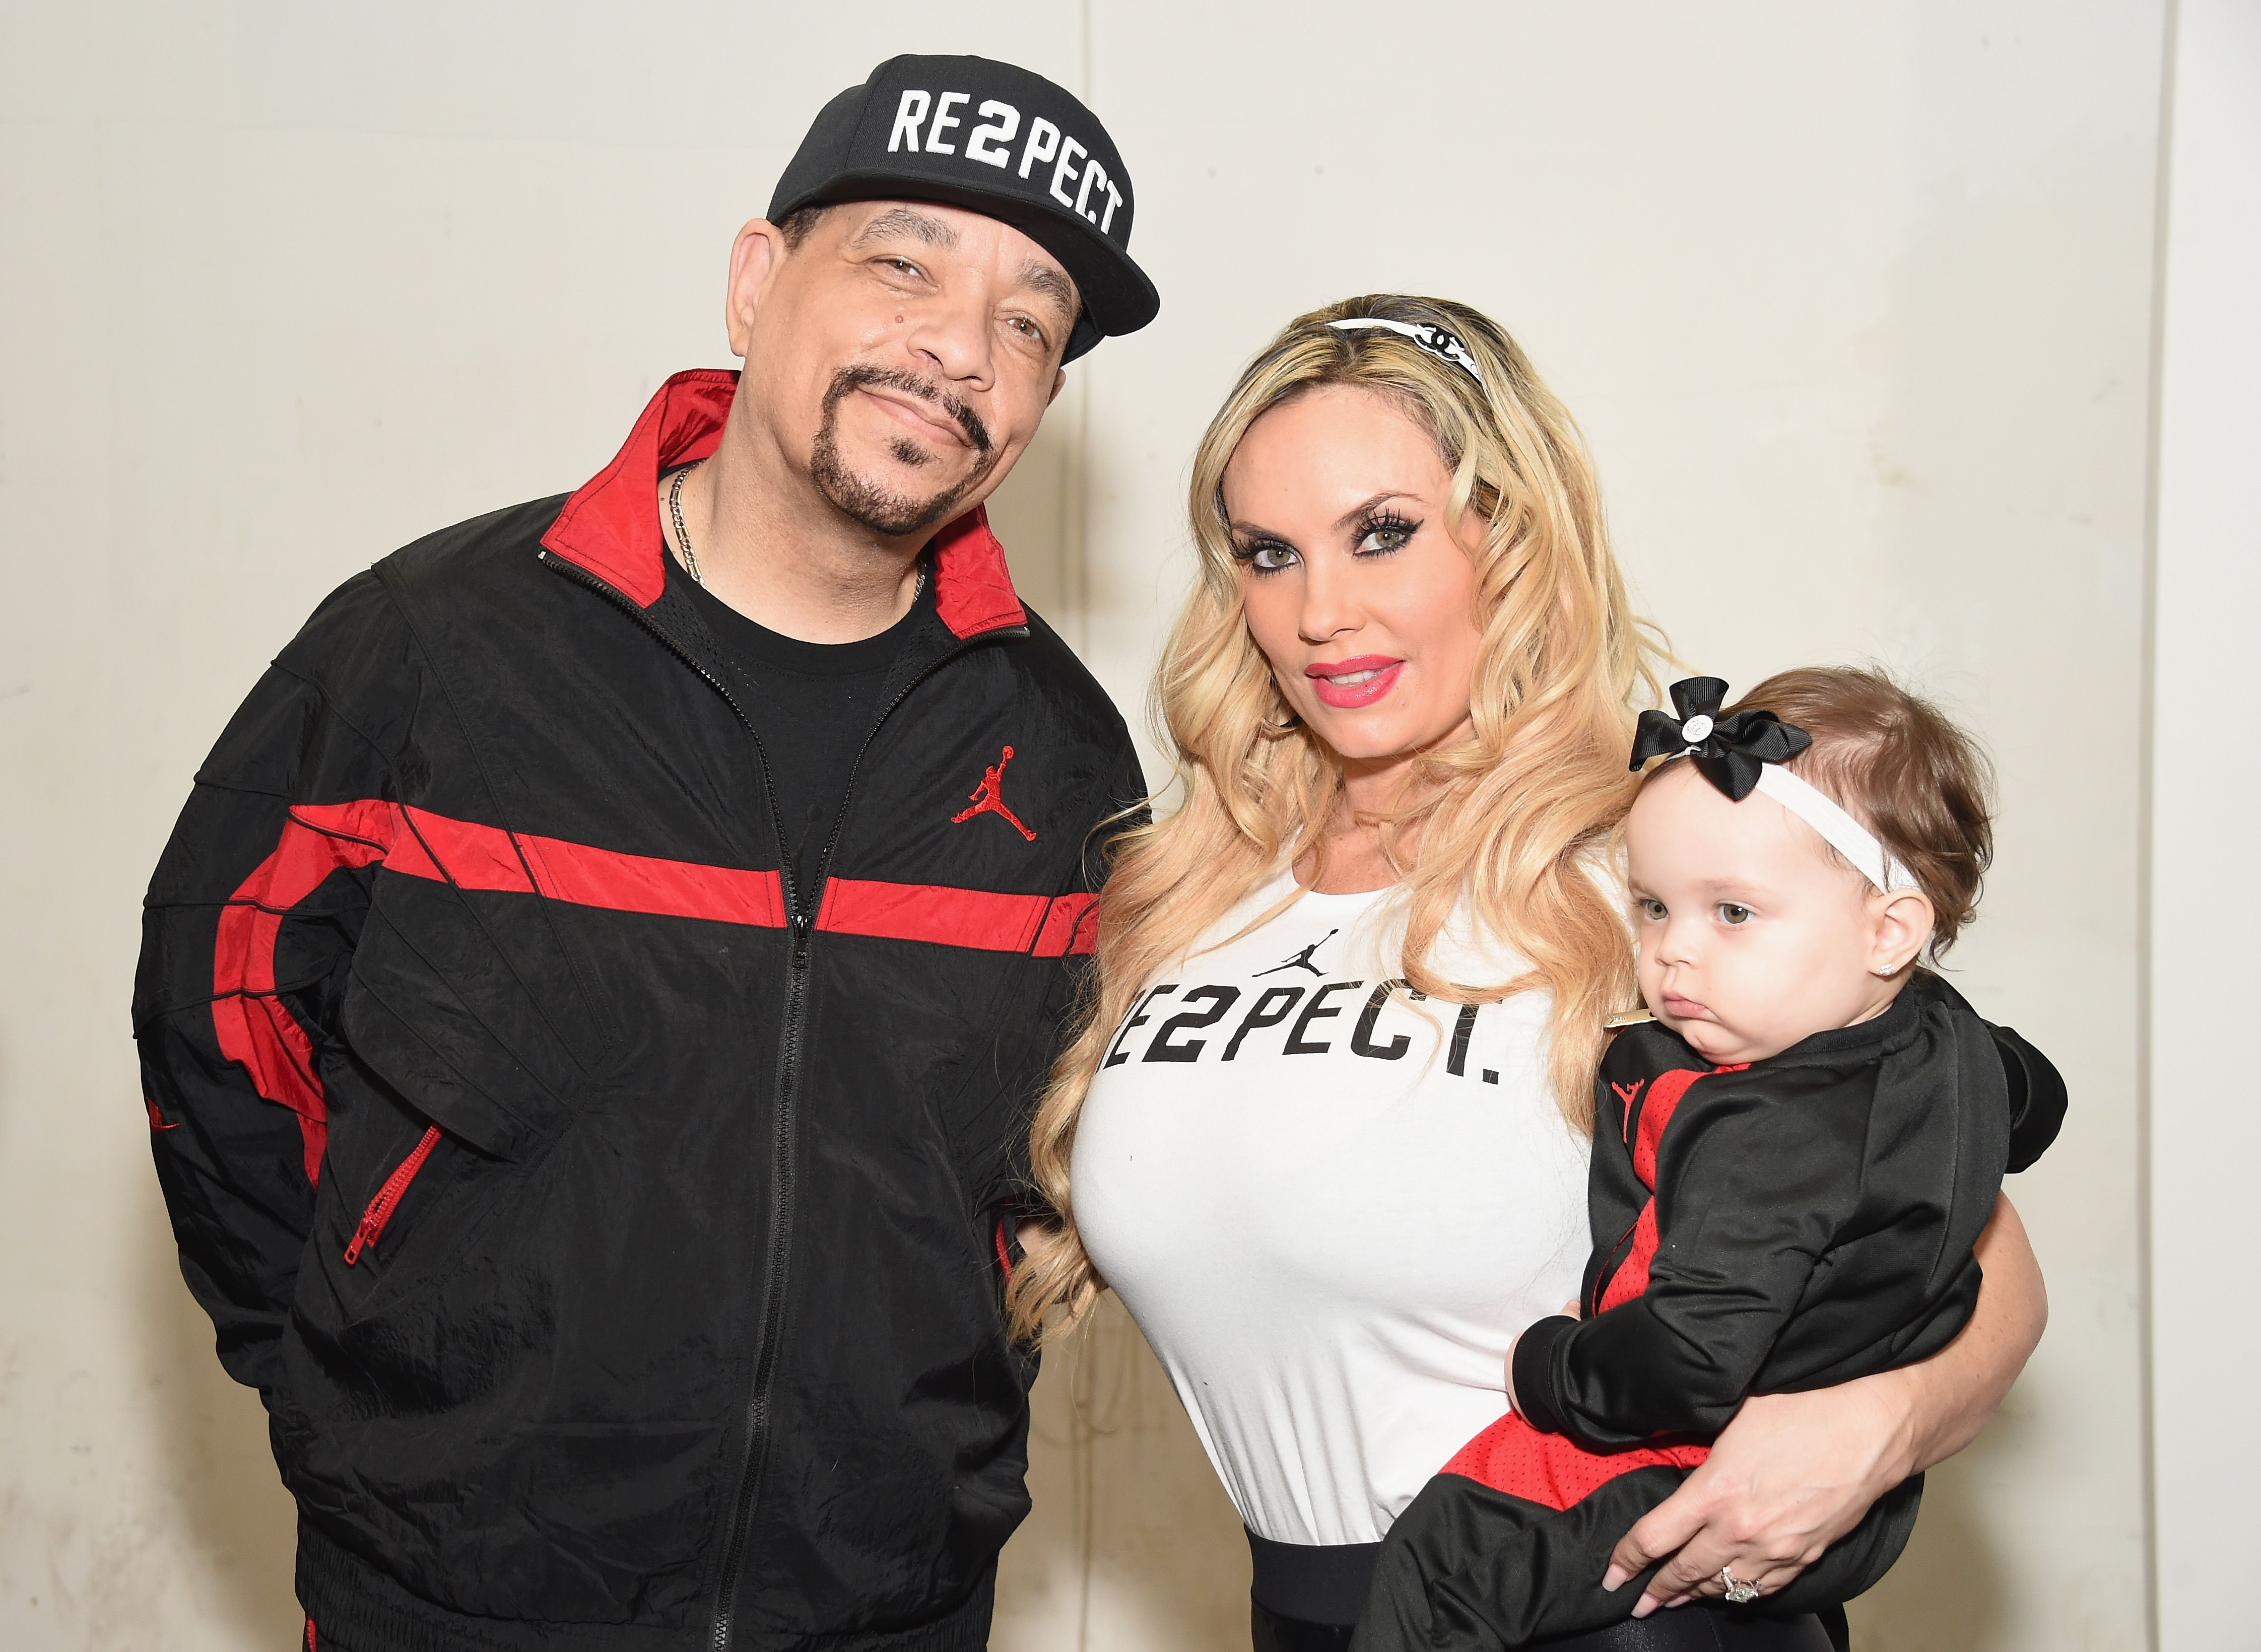 Ice-T, Coco Austin and Chanel Nicole Marrow during the Rookie USA fashion show during New York Fashion Week: The Shows at Gallery 3, Skylight Clarkson on February 15, 2017 in New York City. | Source: Getty Images